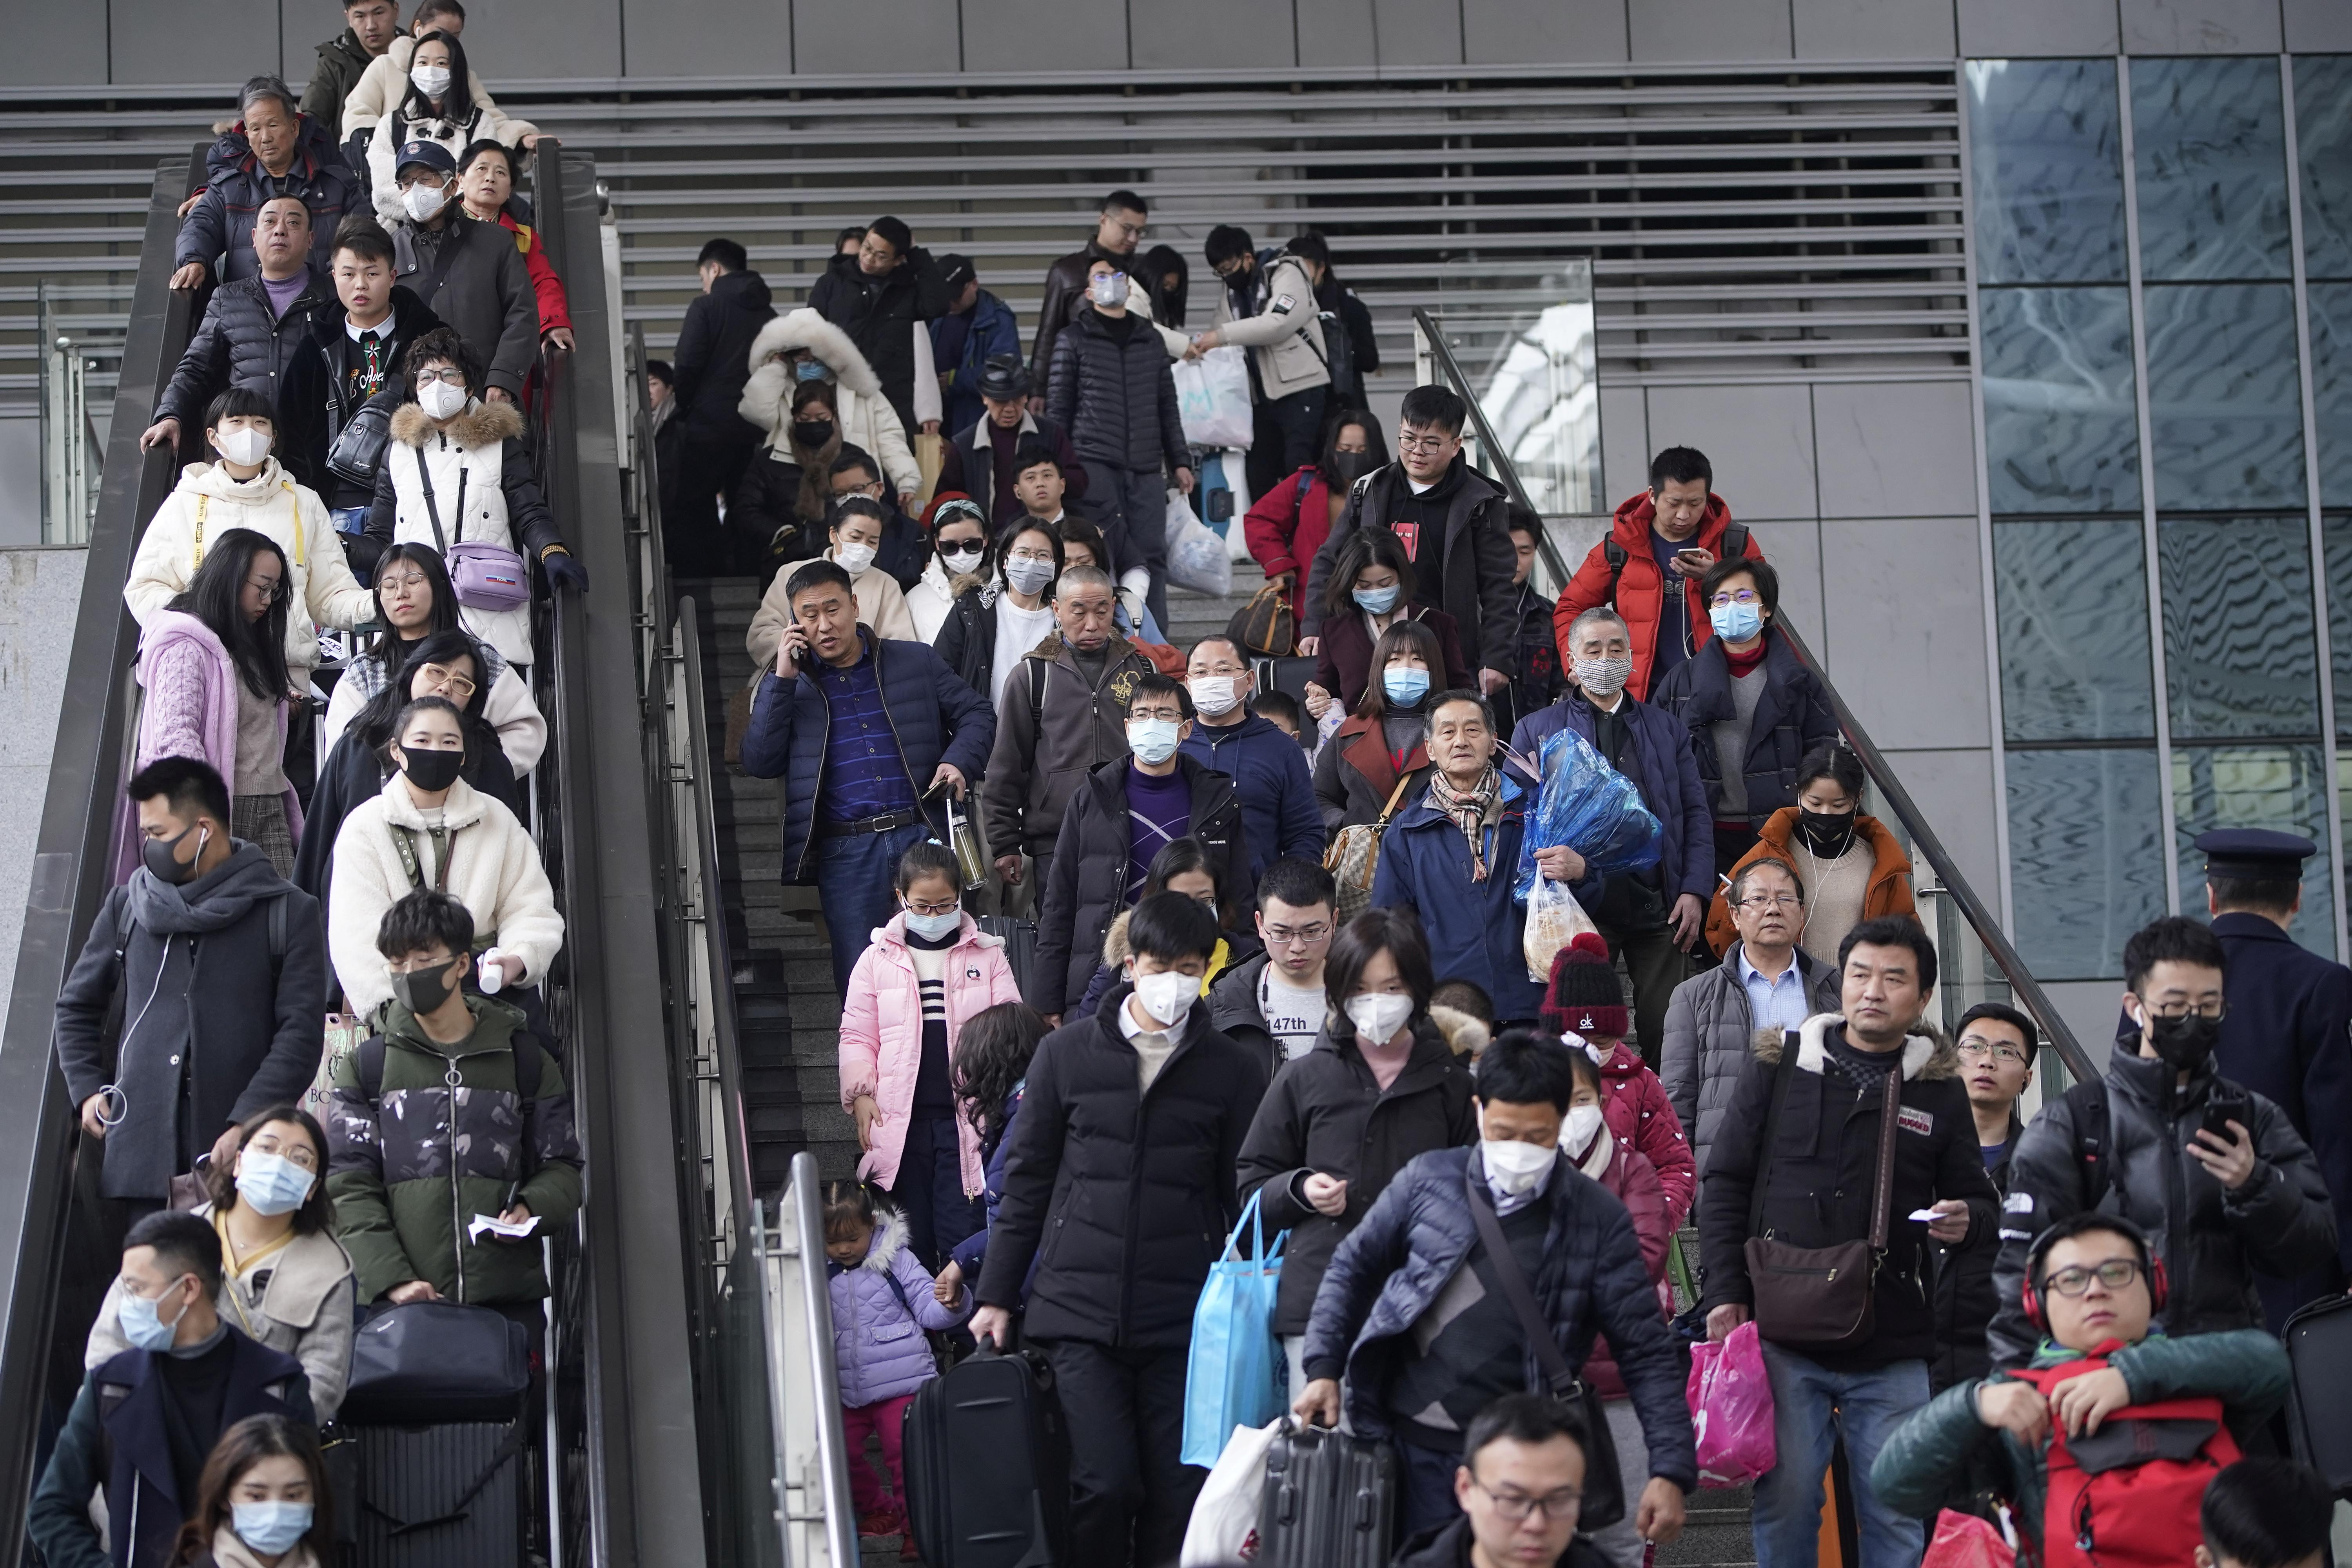 China virus spreads to U.S., curbing travel plans and spooking markets